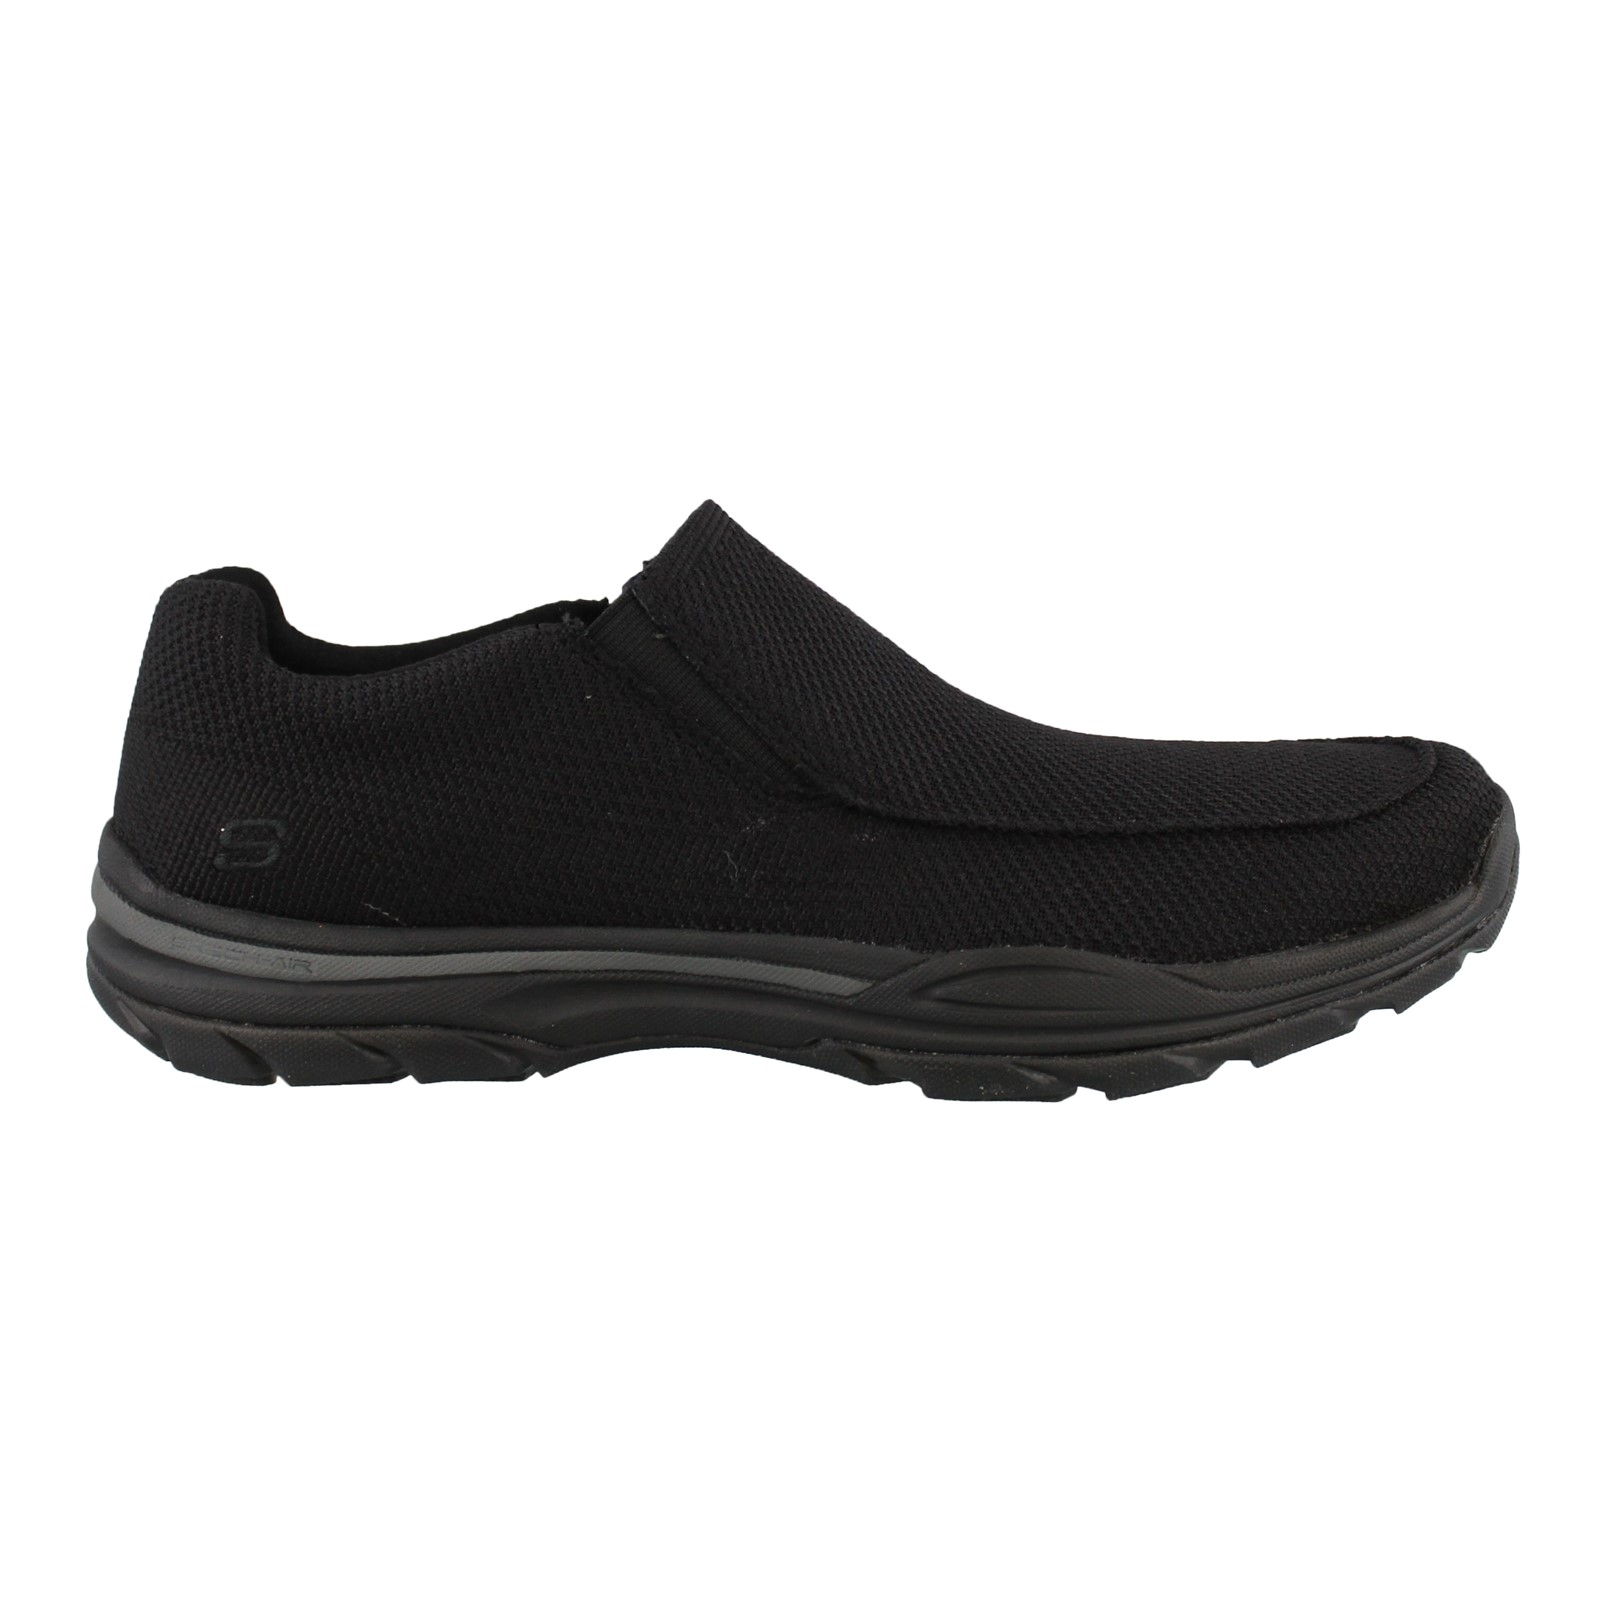 Men's Skechers, Skech-Air: Elment - Vengo Slip-On - Wide Width